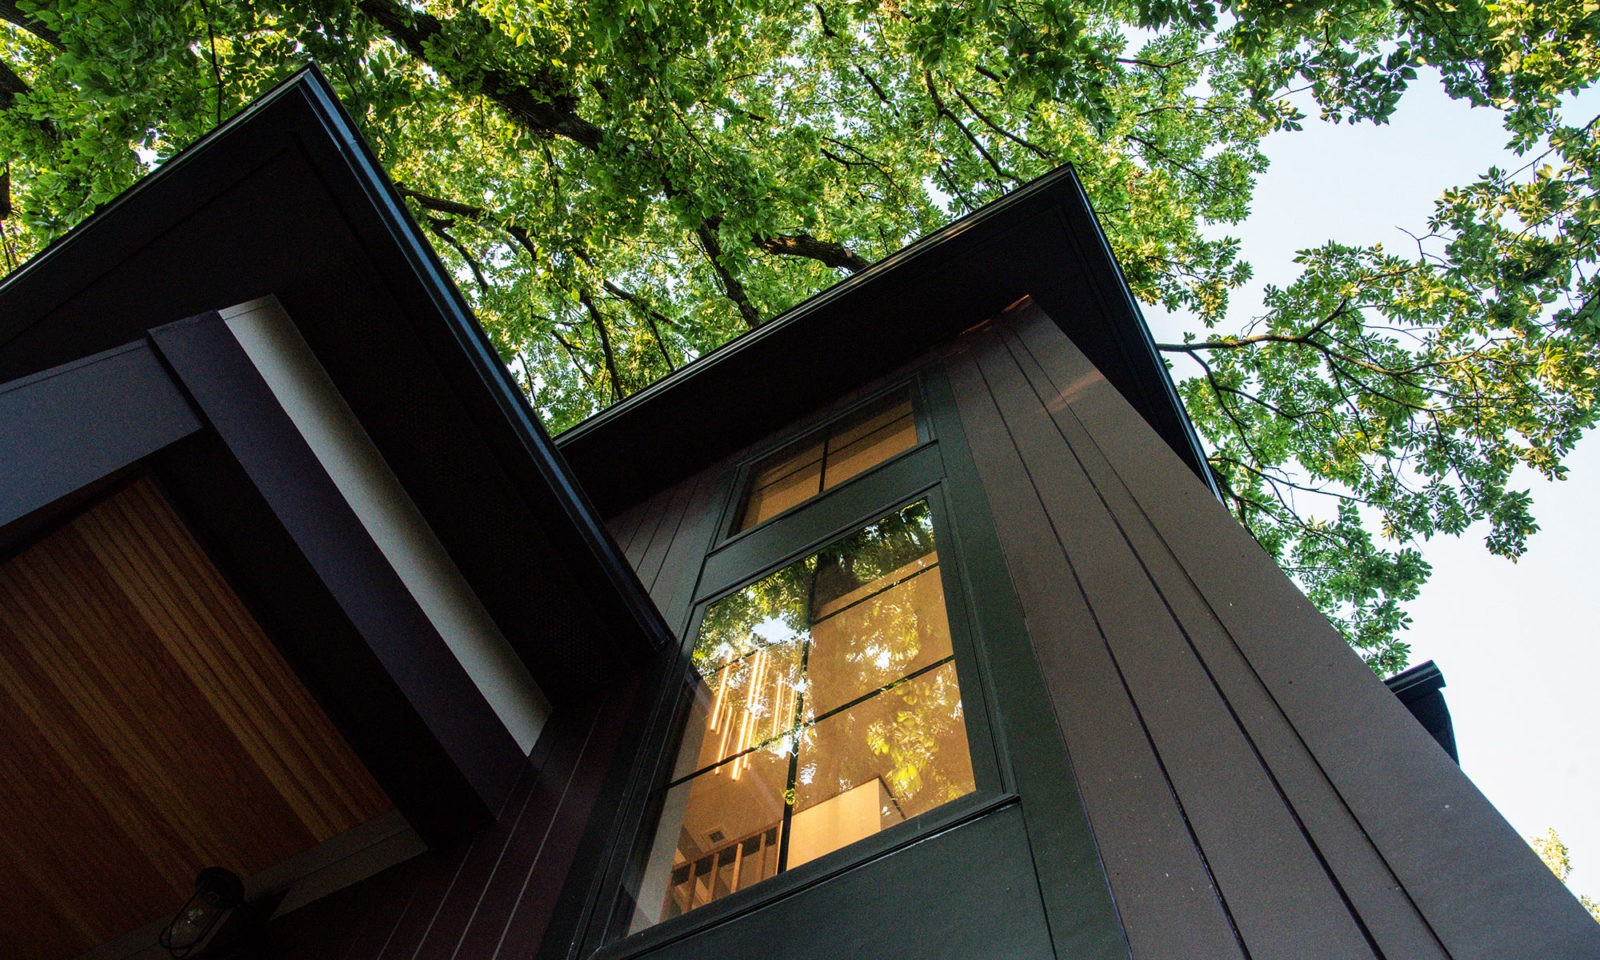 Exterior image of a home looking up into a well lit window